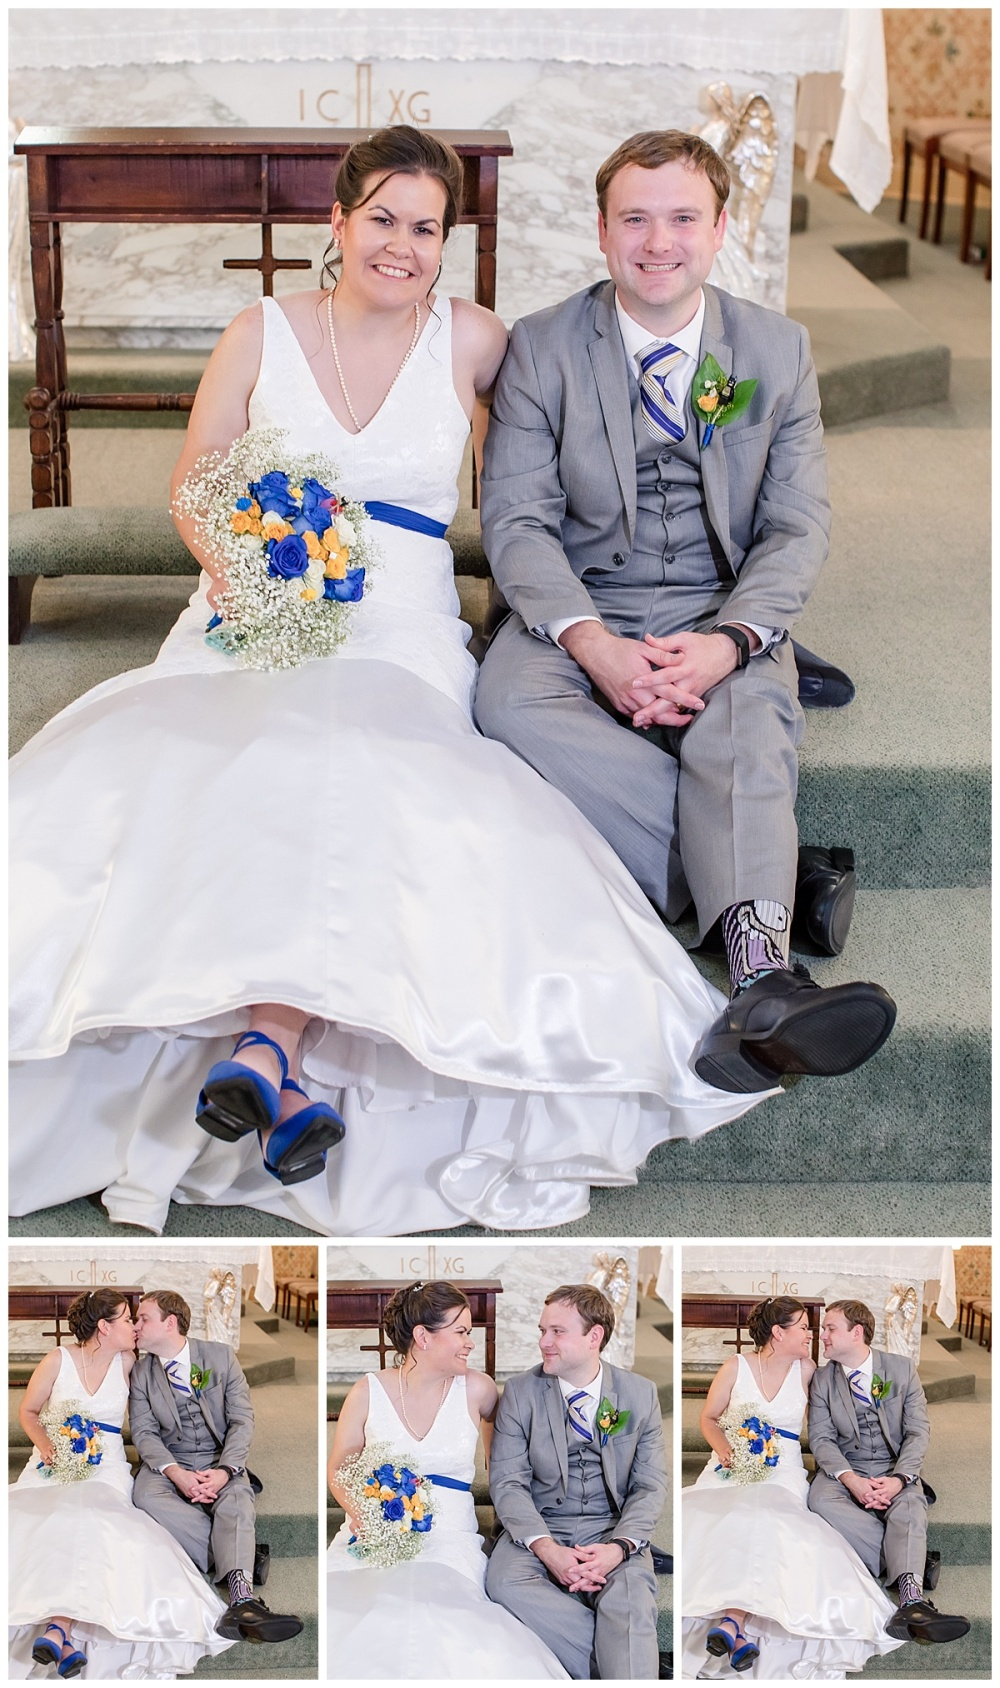 Texas-Wedding-Photographer-La-Coste-Our-Lady-Of-Grace-Church-Bride-Groom-Lego-Theme-Carly-Barton-Photography_0023.jpg